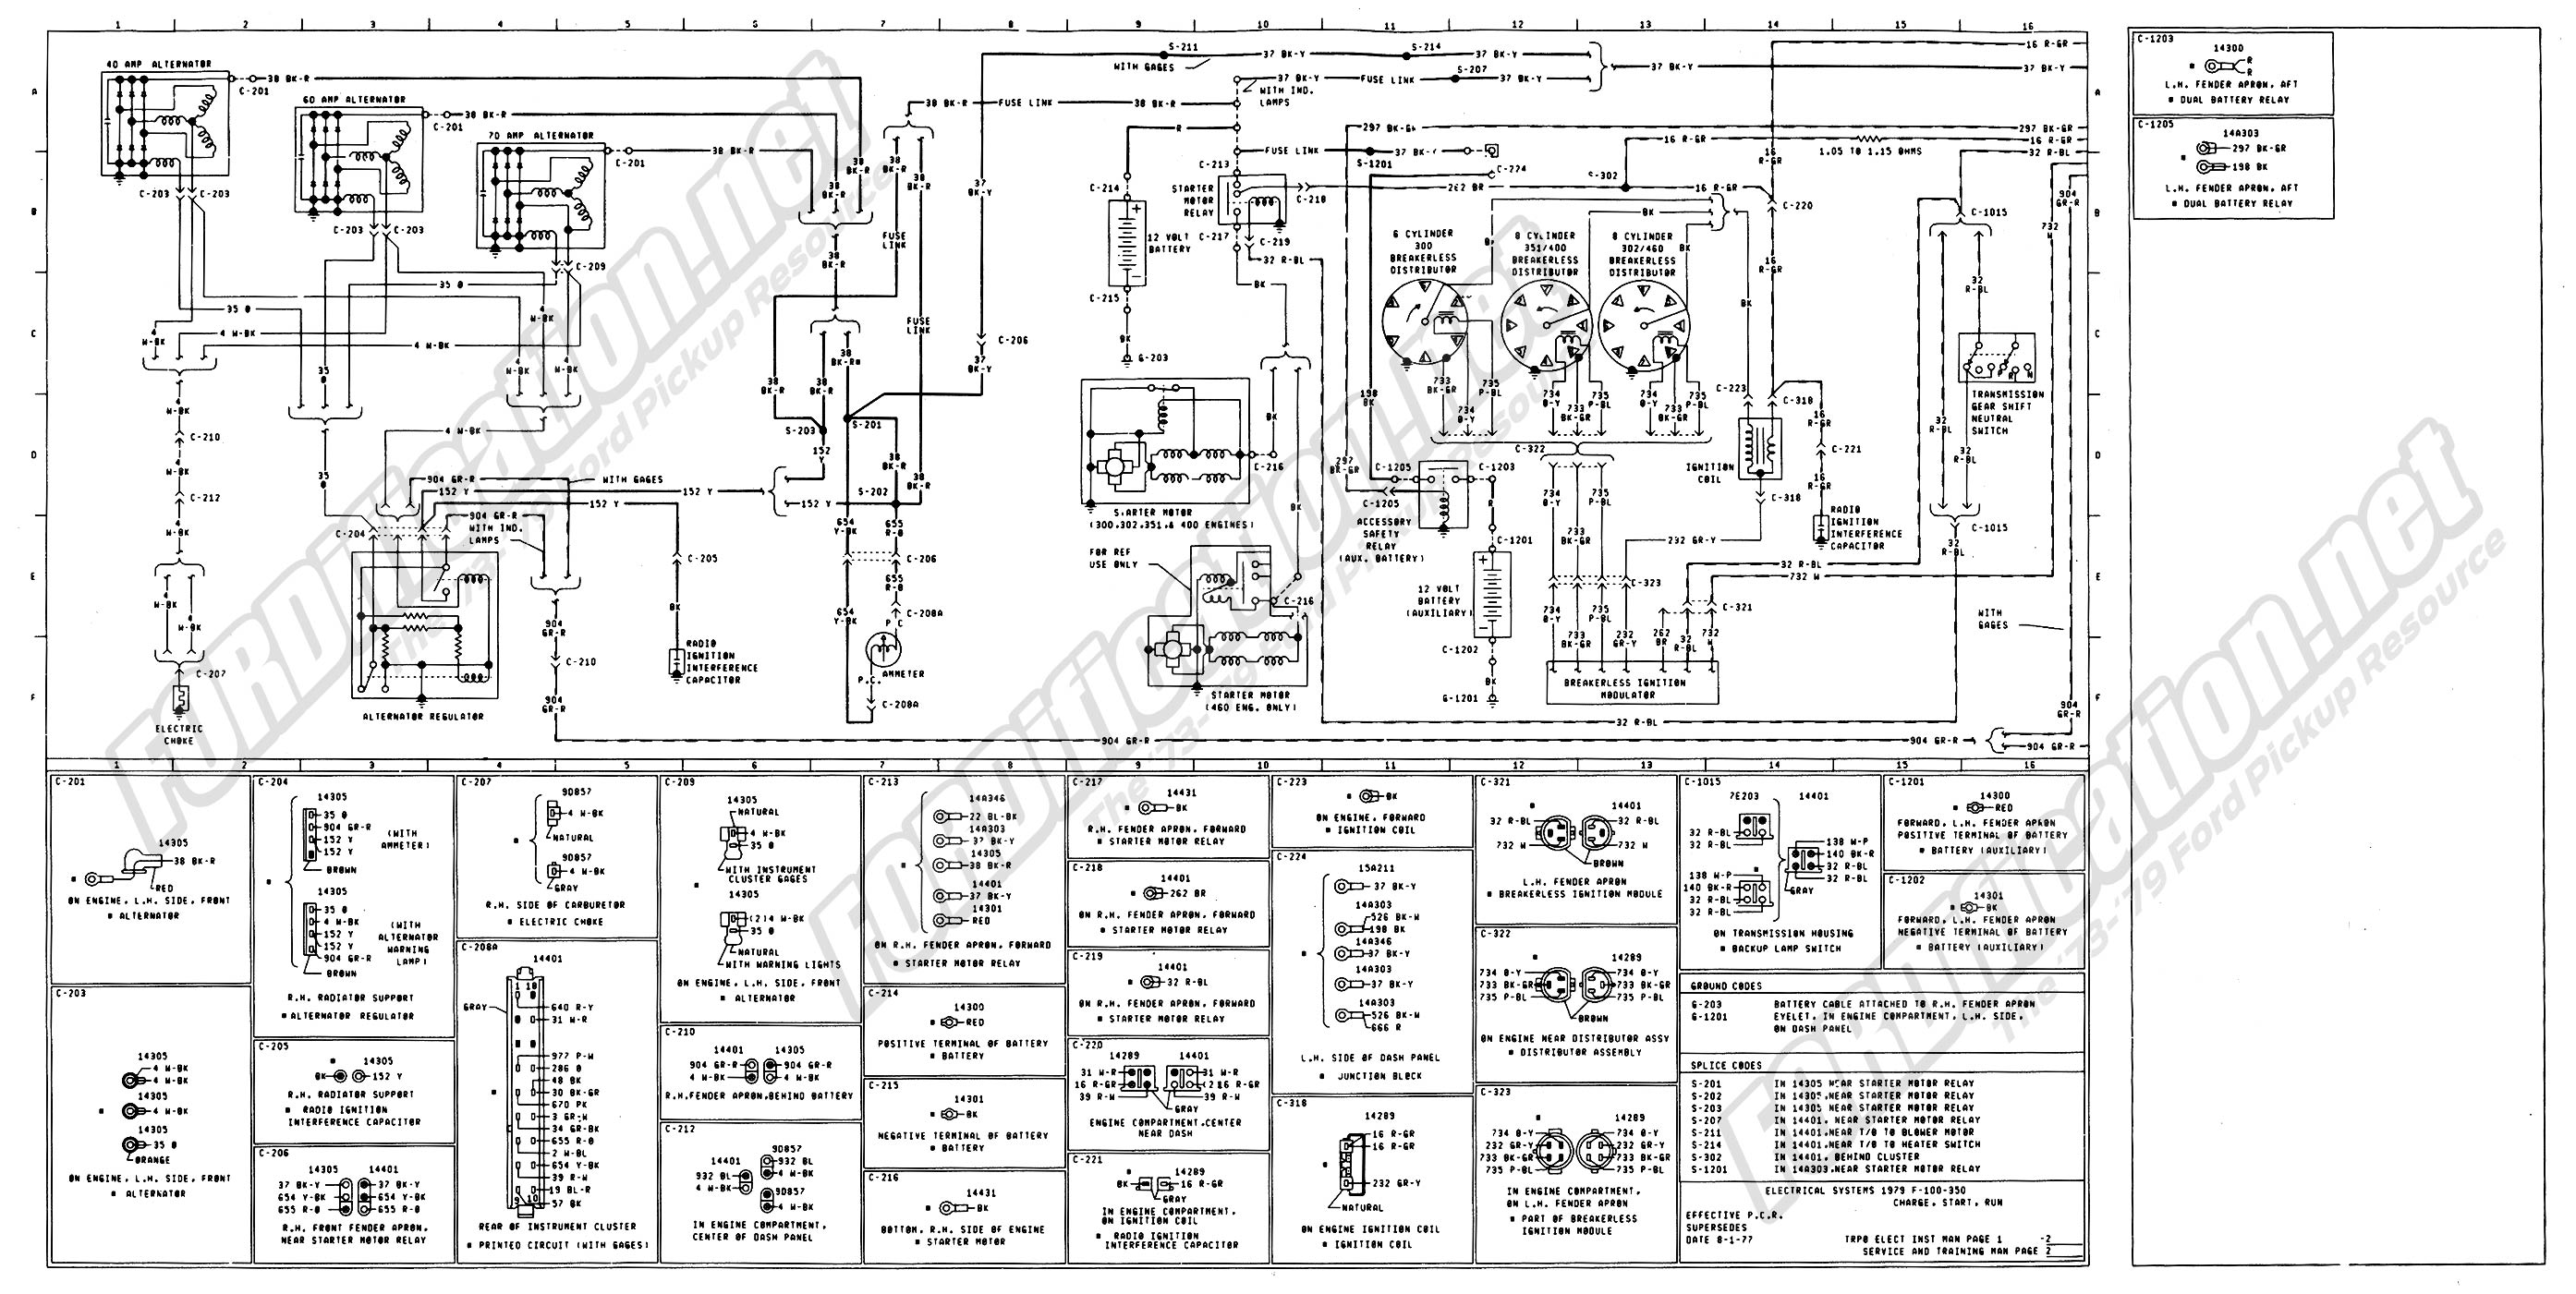 wiring_79master_2of9 1973 1979 ford truck wiring diagrams & schematics fordification net  at bakdesigns.co